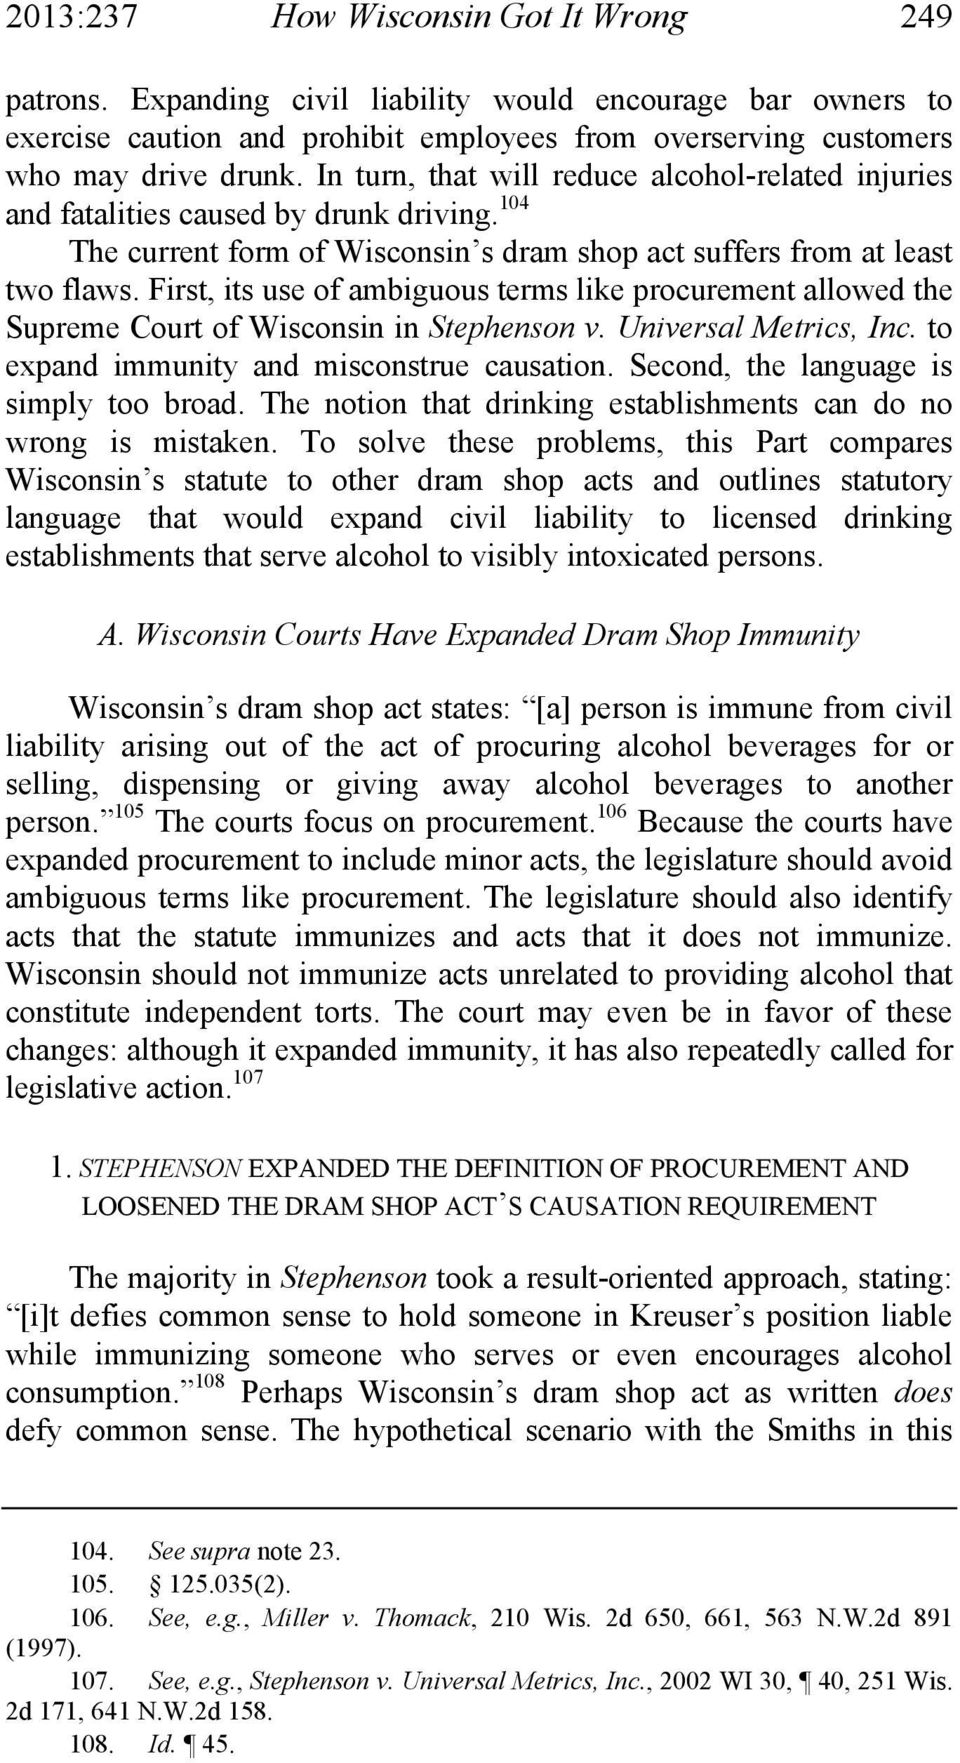 First, its use of ambiguous terms like procurement allowed the Supreme Court of Wisconsin in Stephenson v. Universal Metrics, Inc. to expand immunity and misconstrue causation.